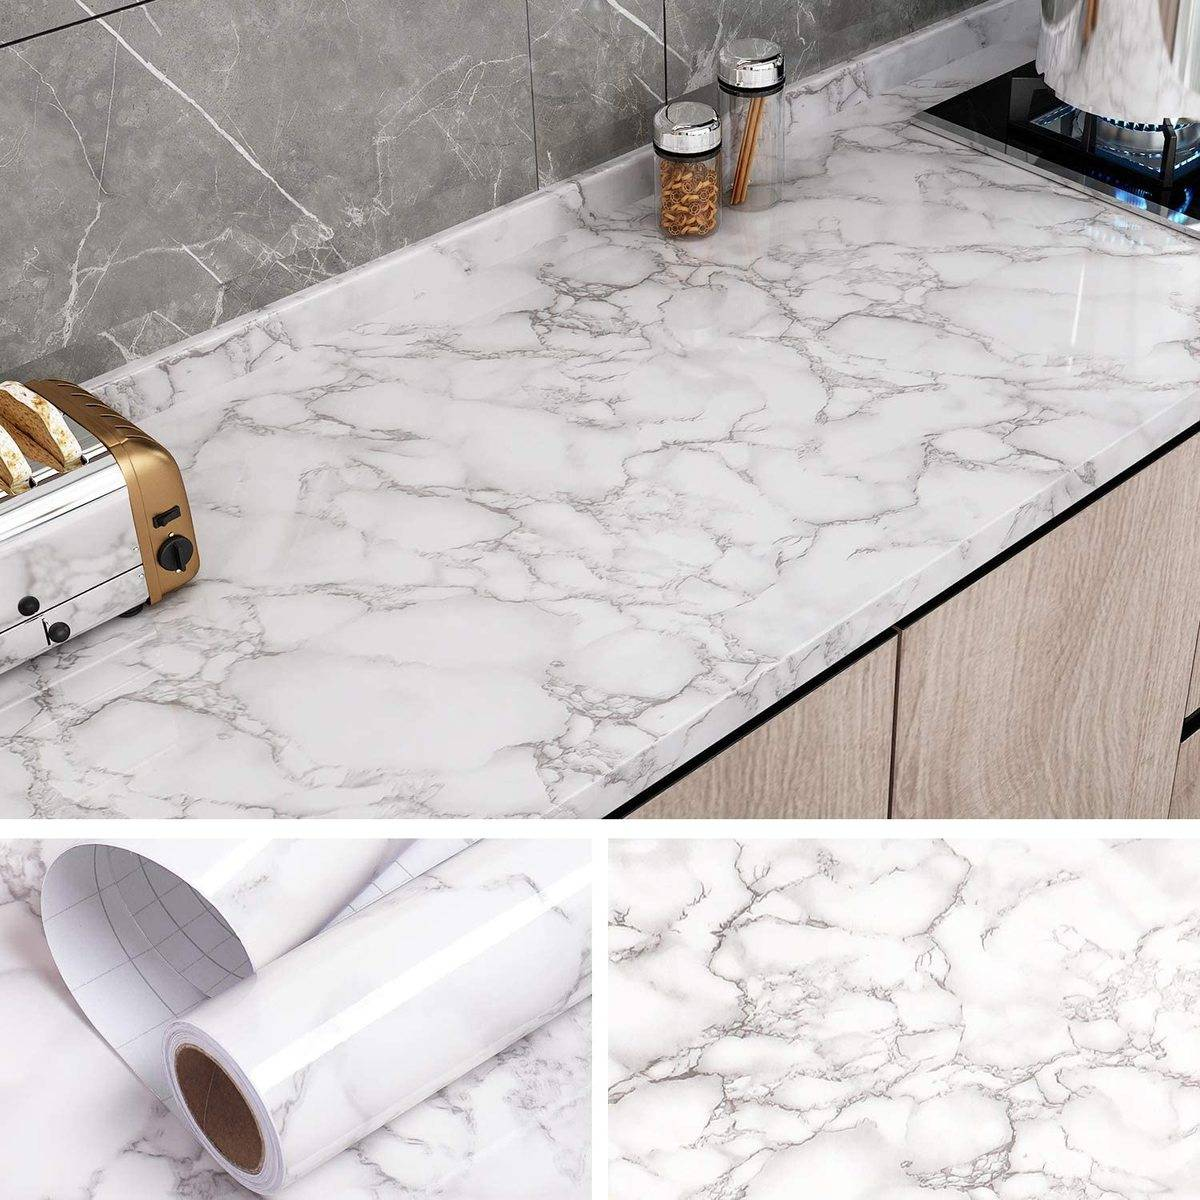 Removable marble contact paper has been attached to a countertop.